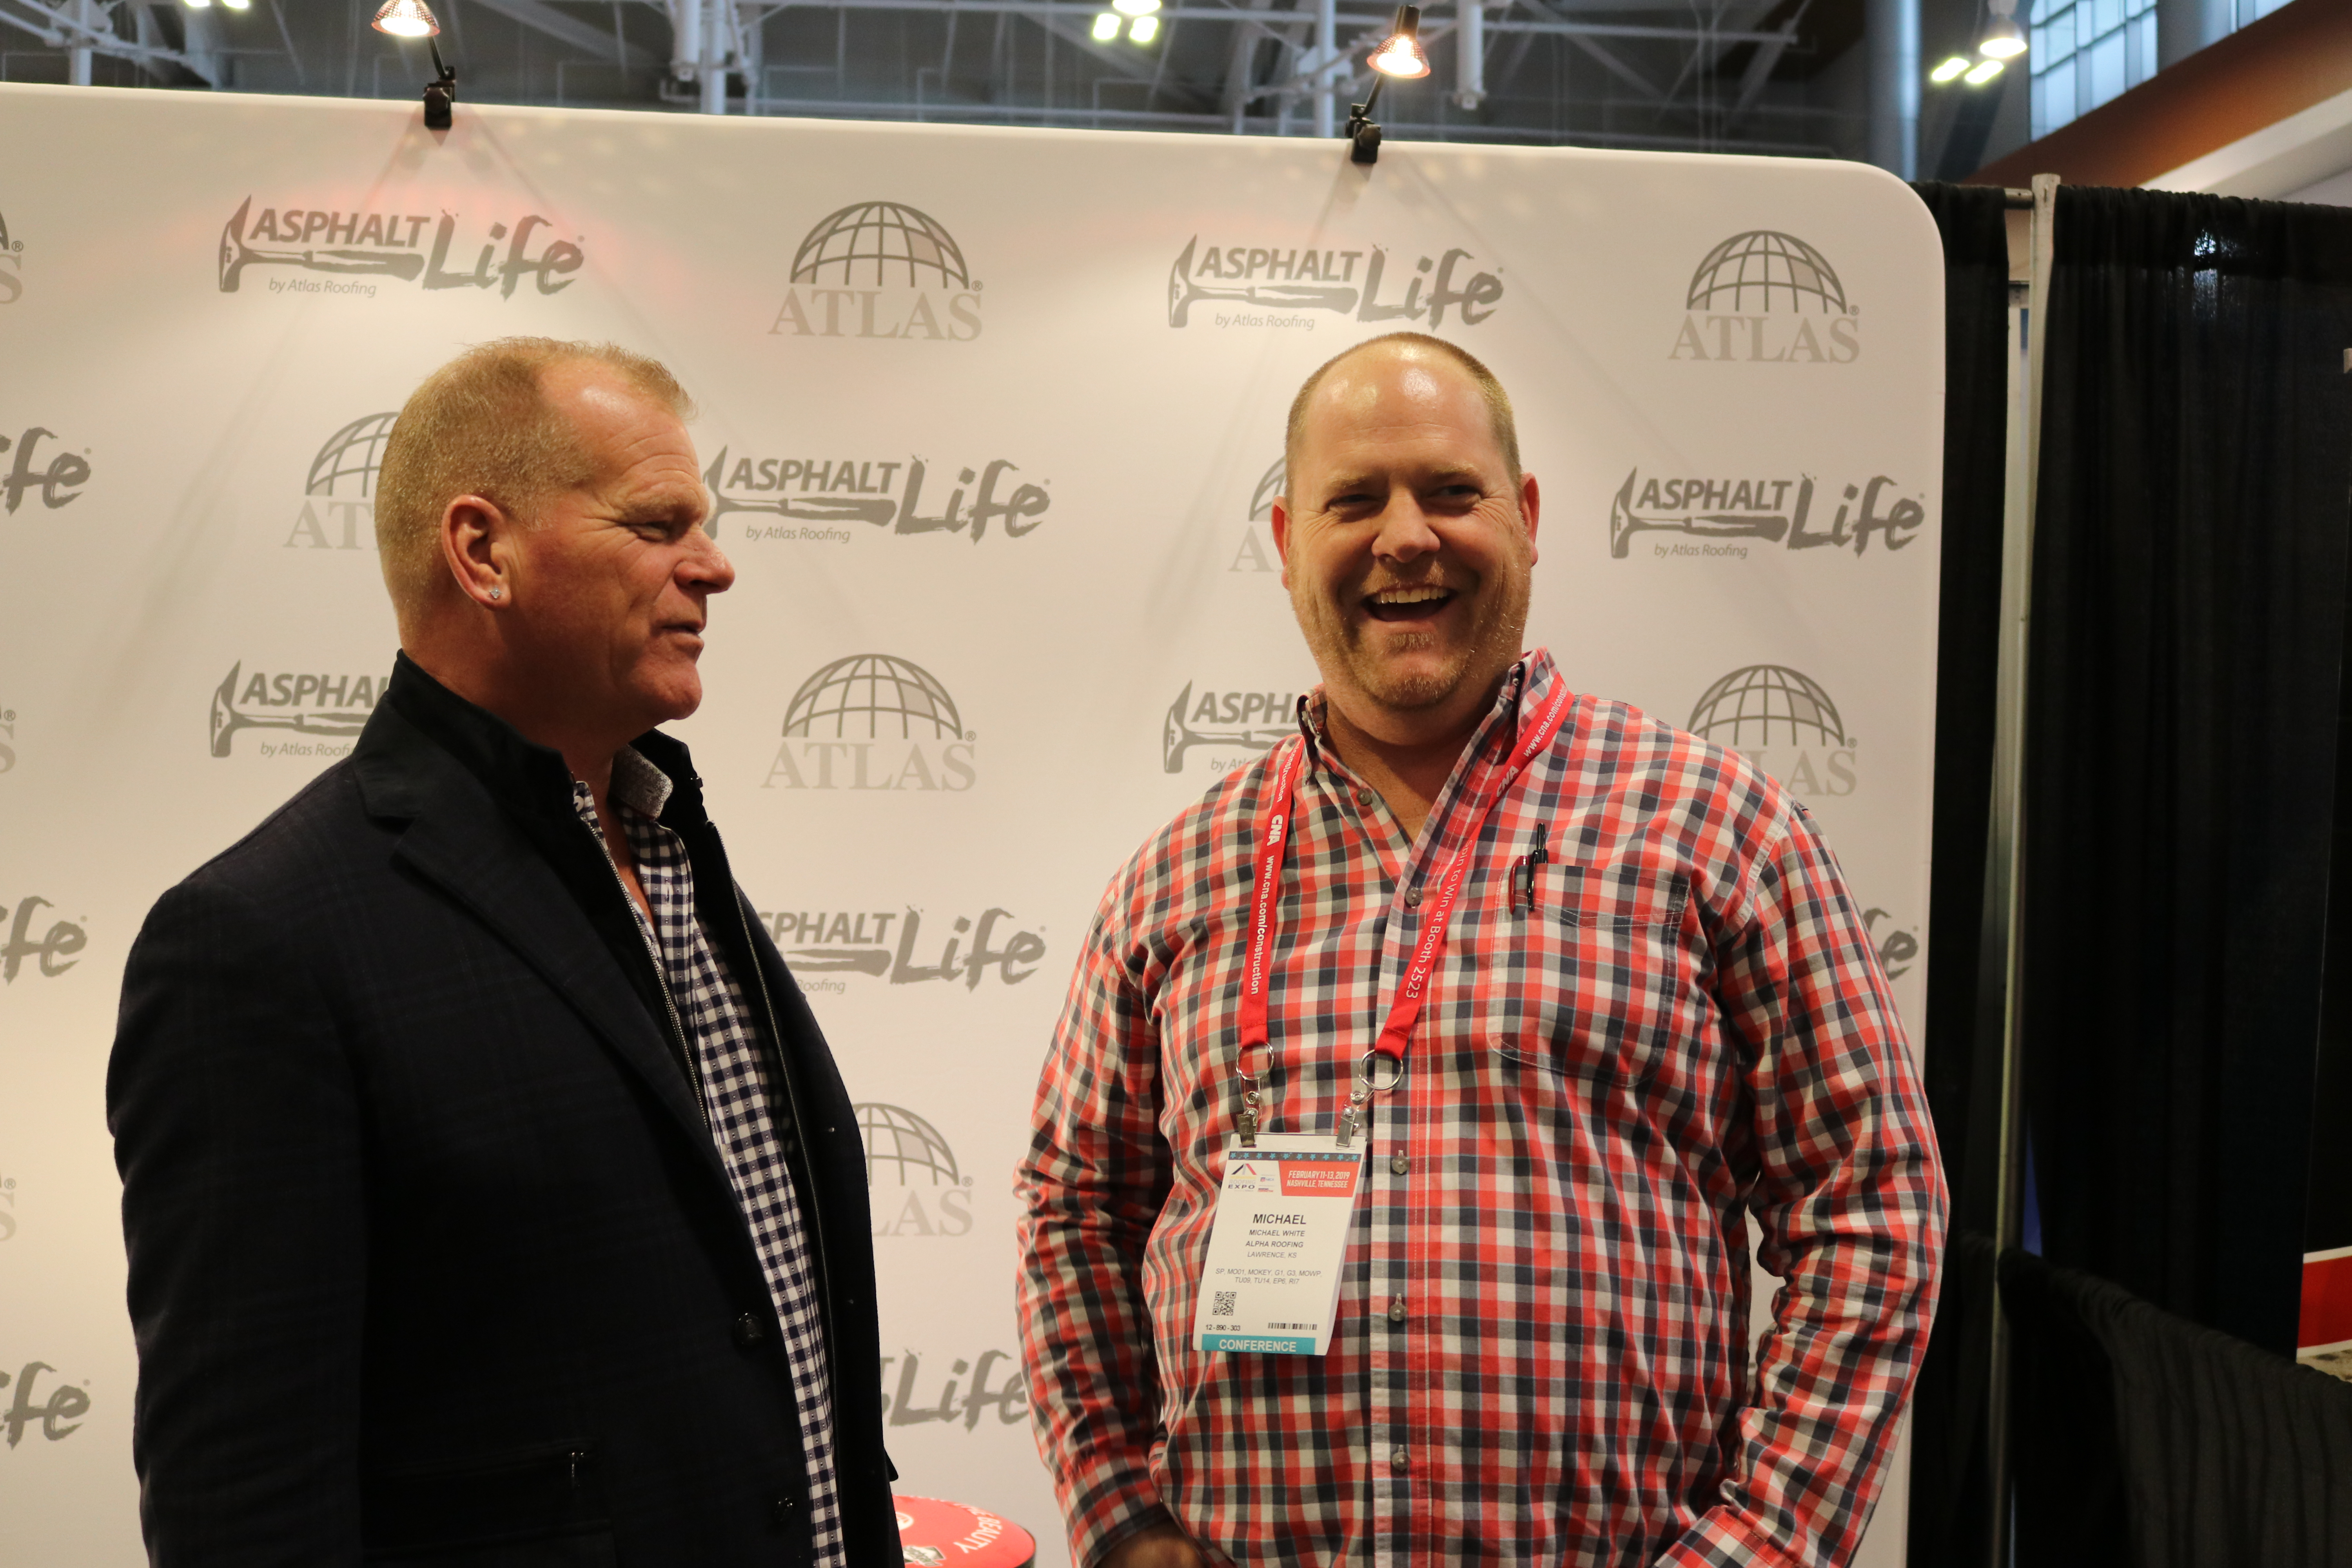 Mike Holmes photo op with IRE attendees